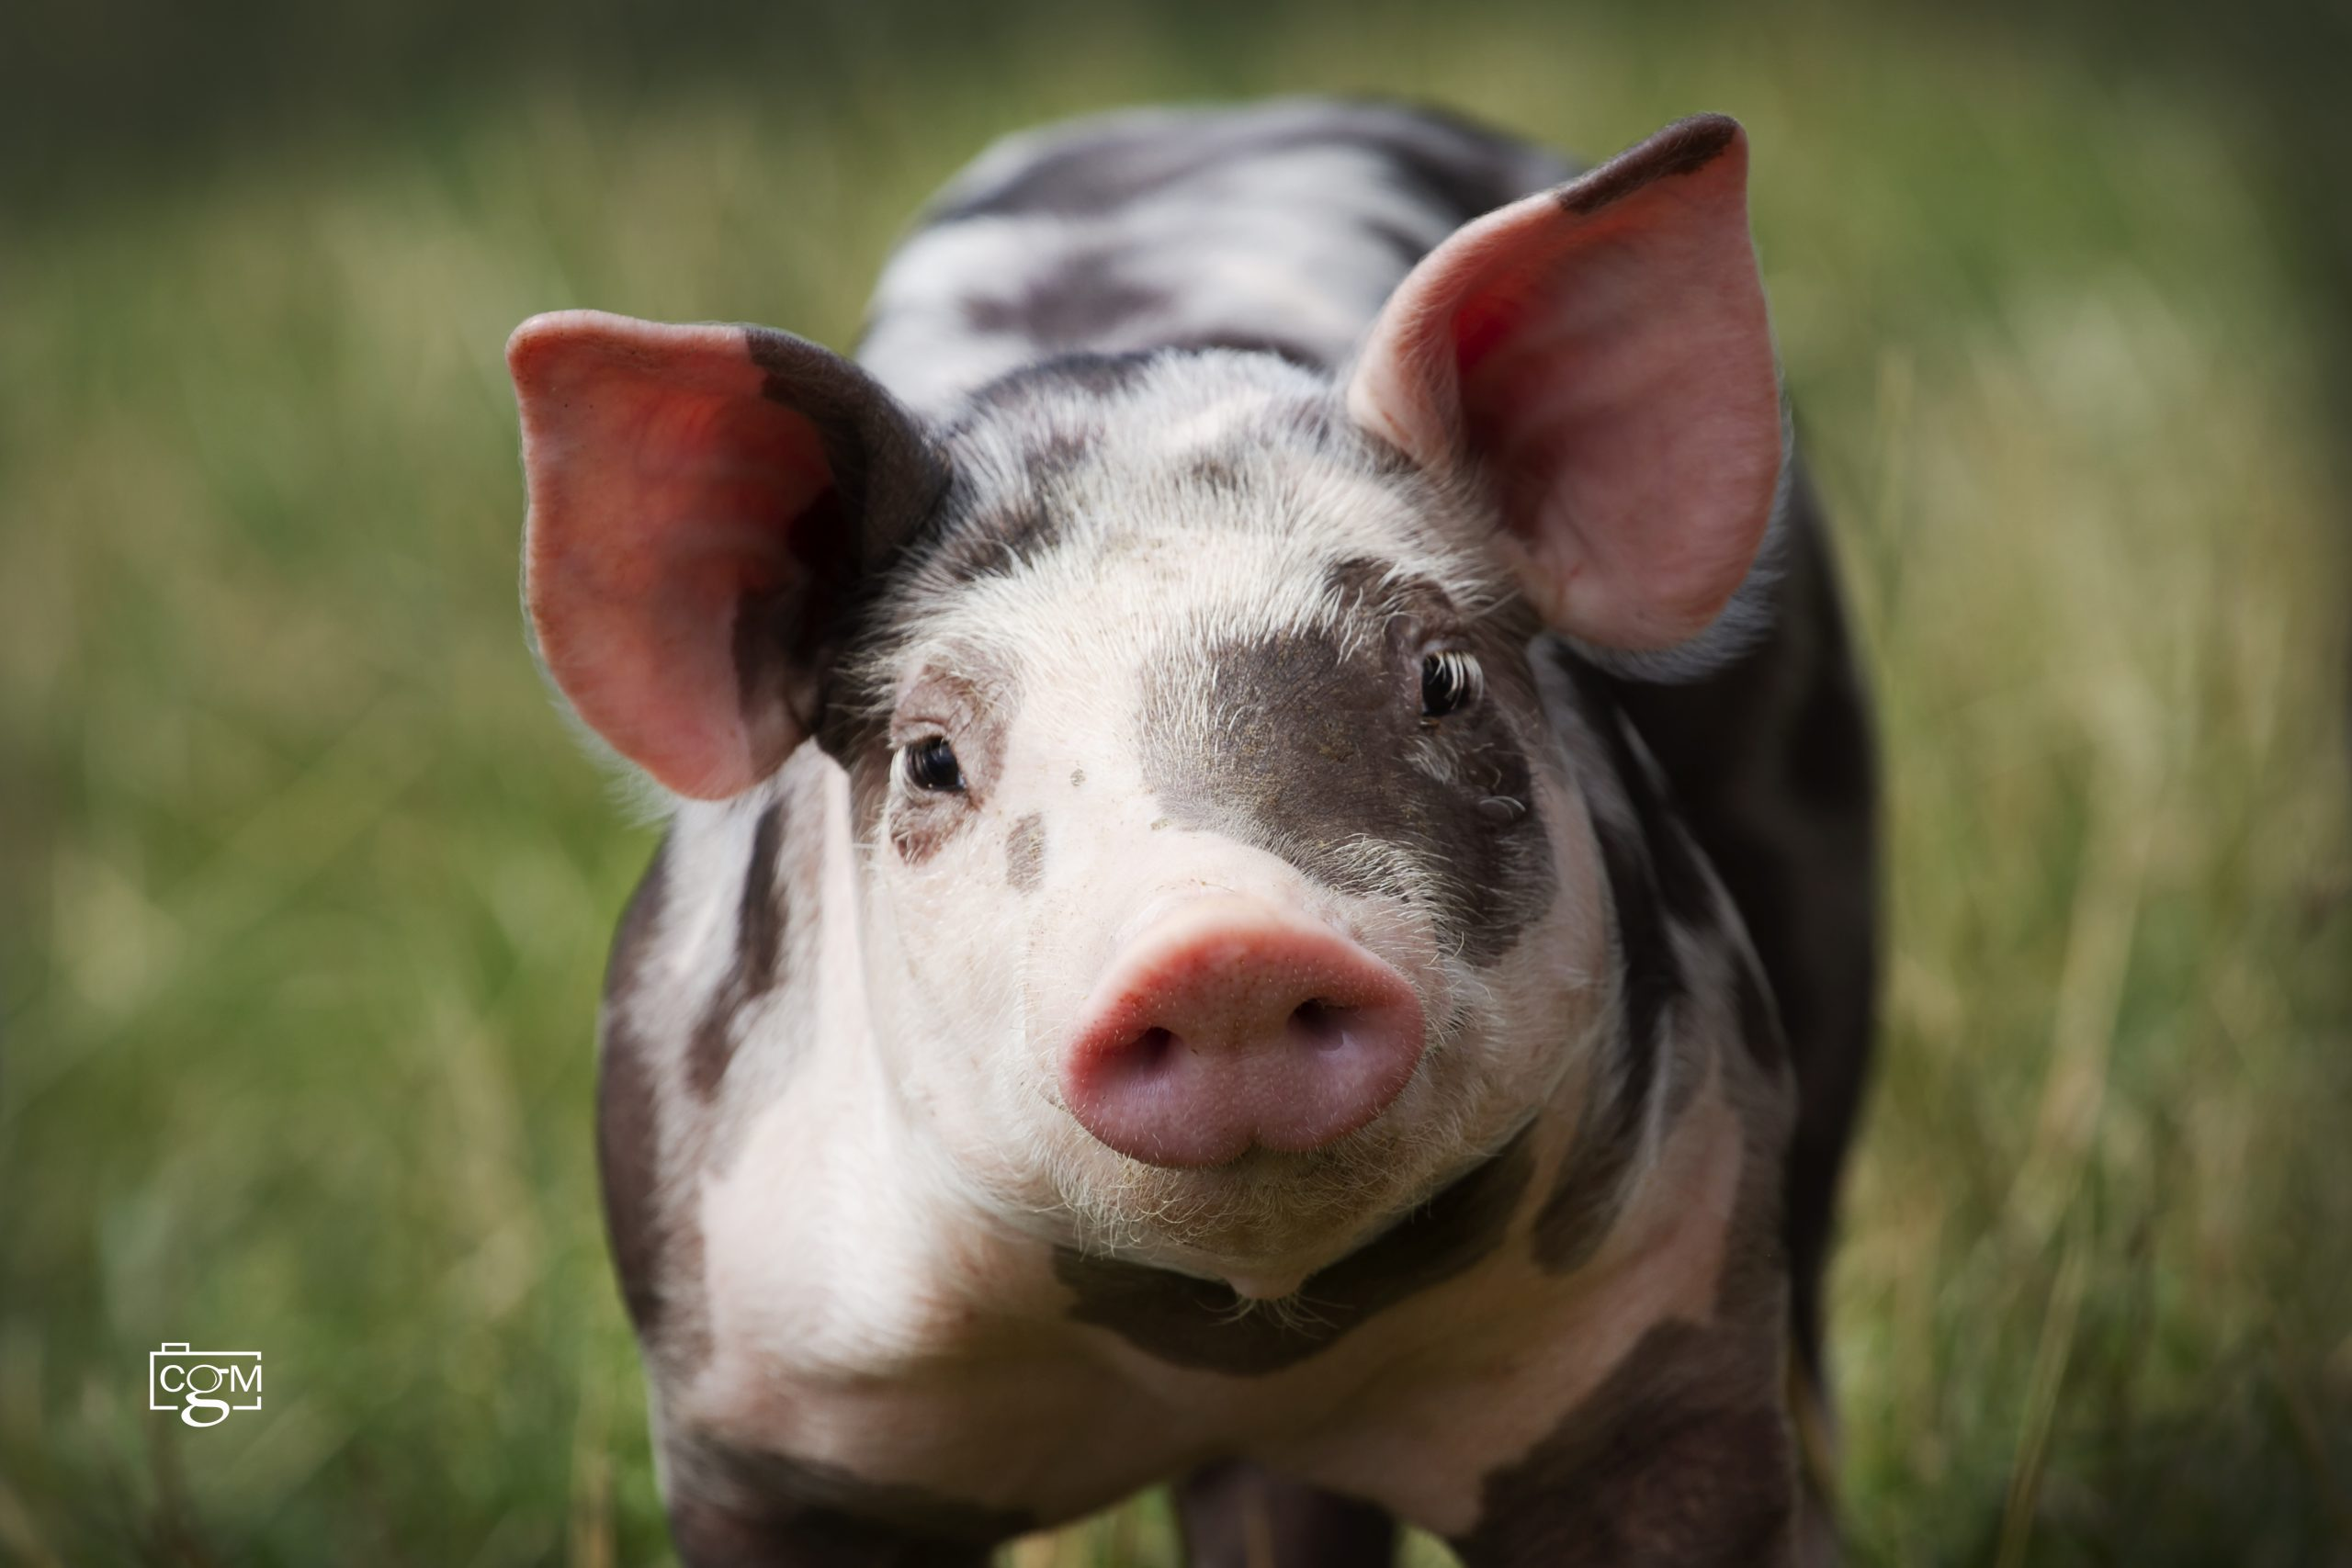 It's official – we're pig farmers!